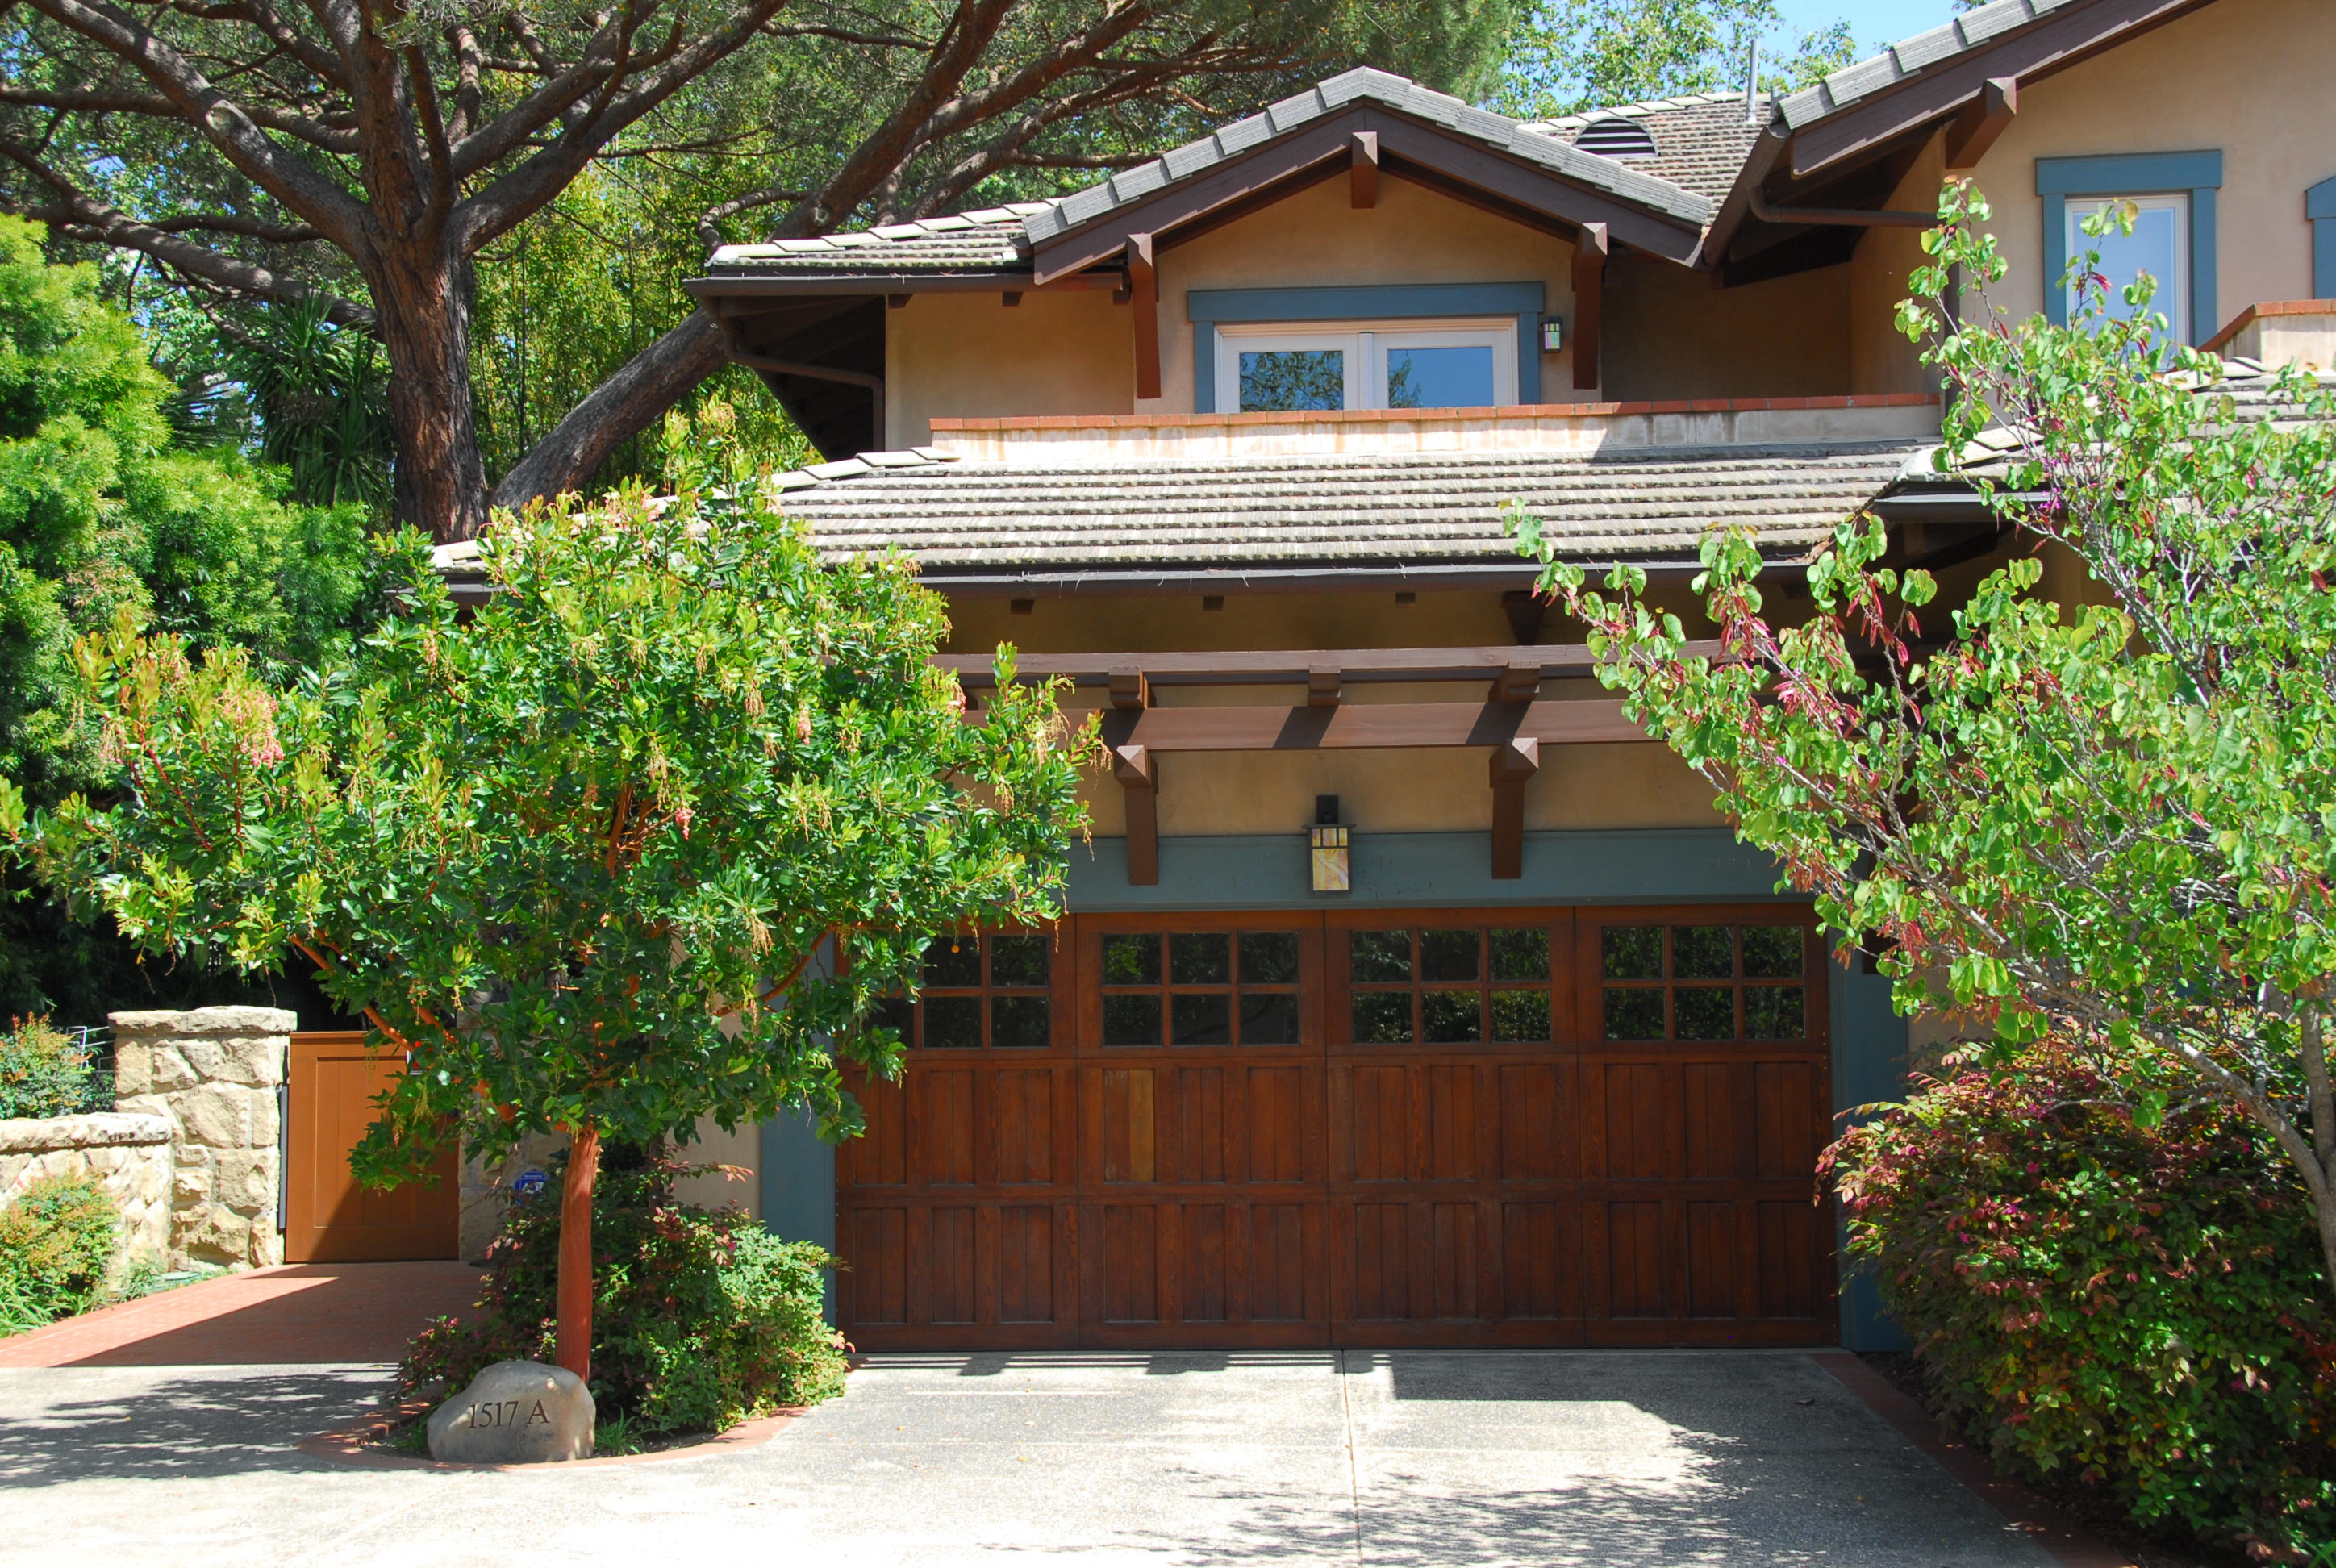 Property photo for 1517 East Valley Rd #A Montecito, California 93108 - 14-1202